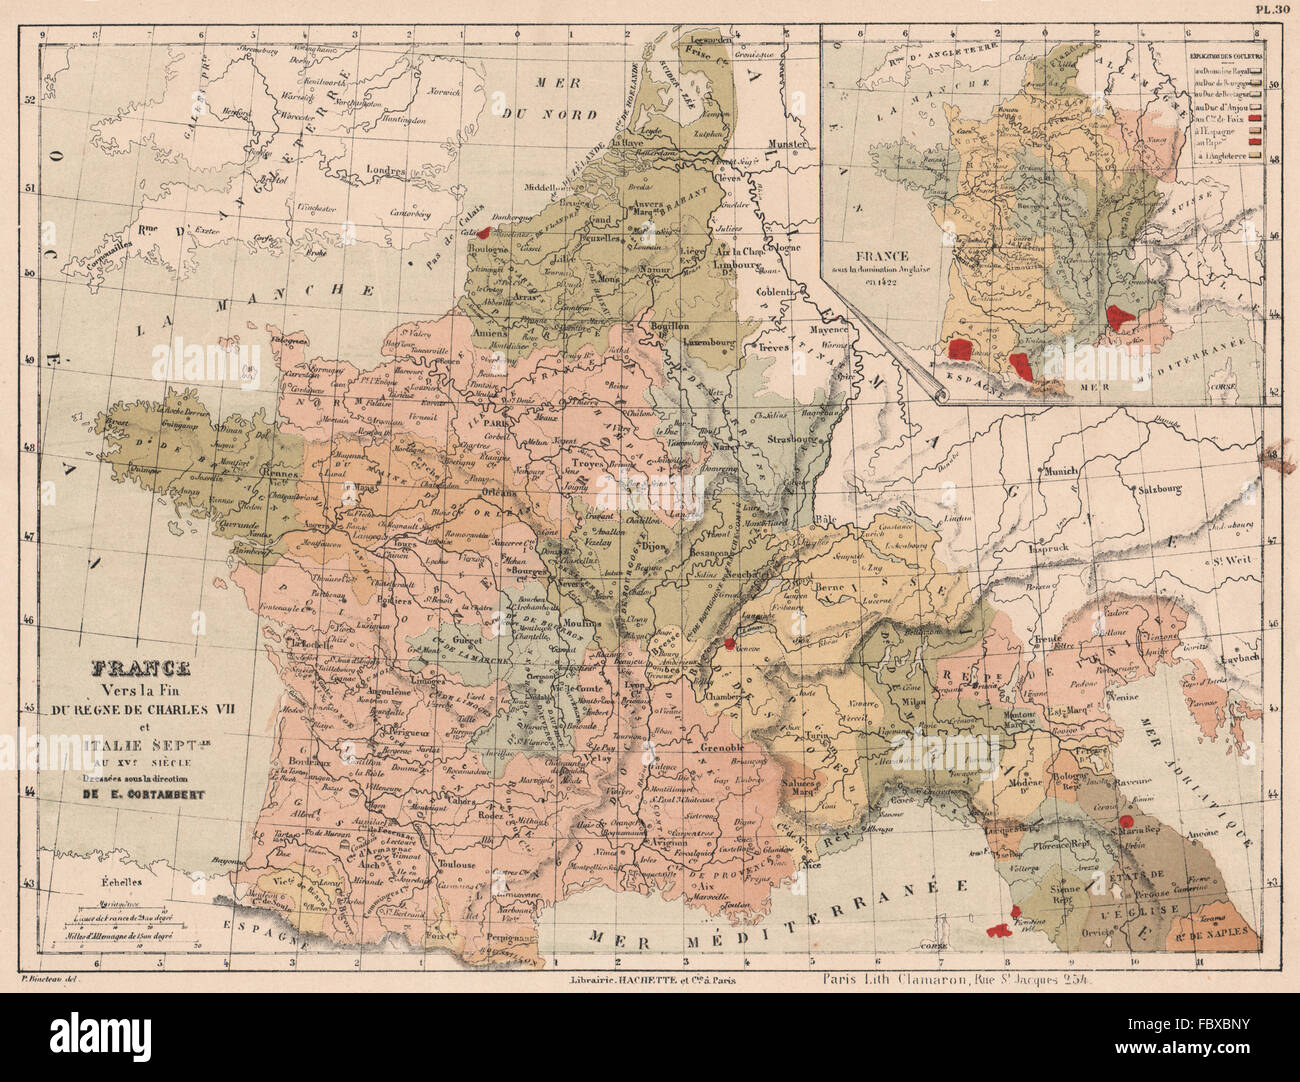 English Map Of France.English France Map Stock Photos English France Map Stock Images